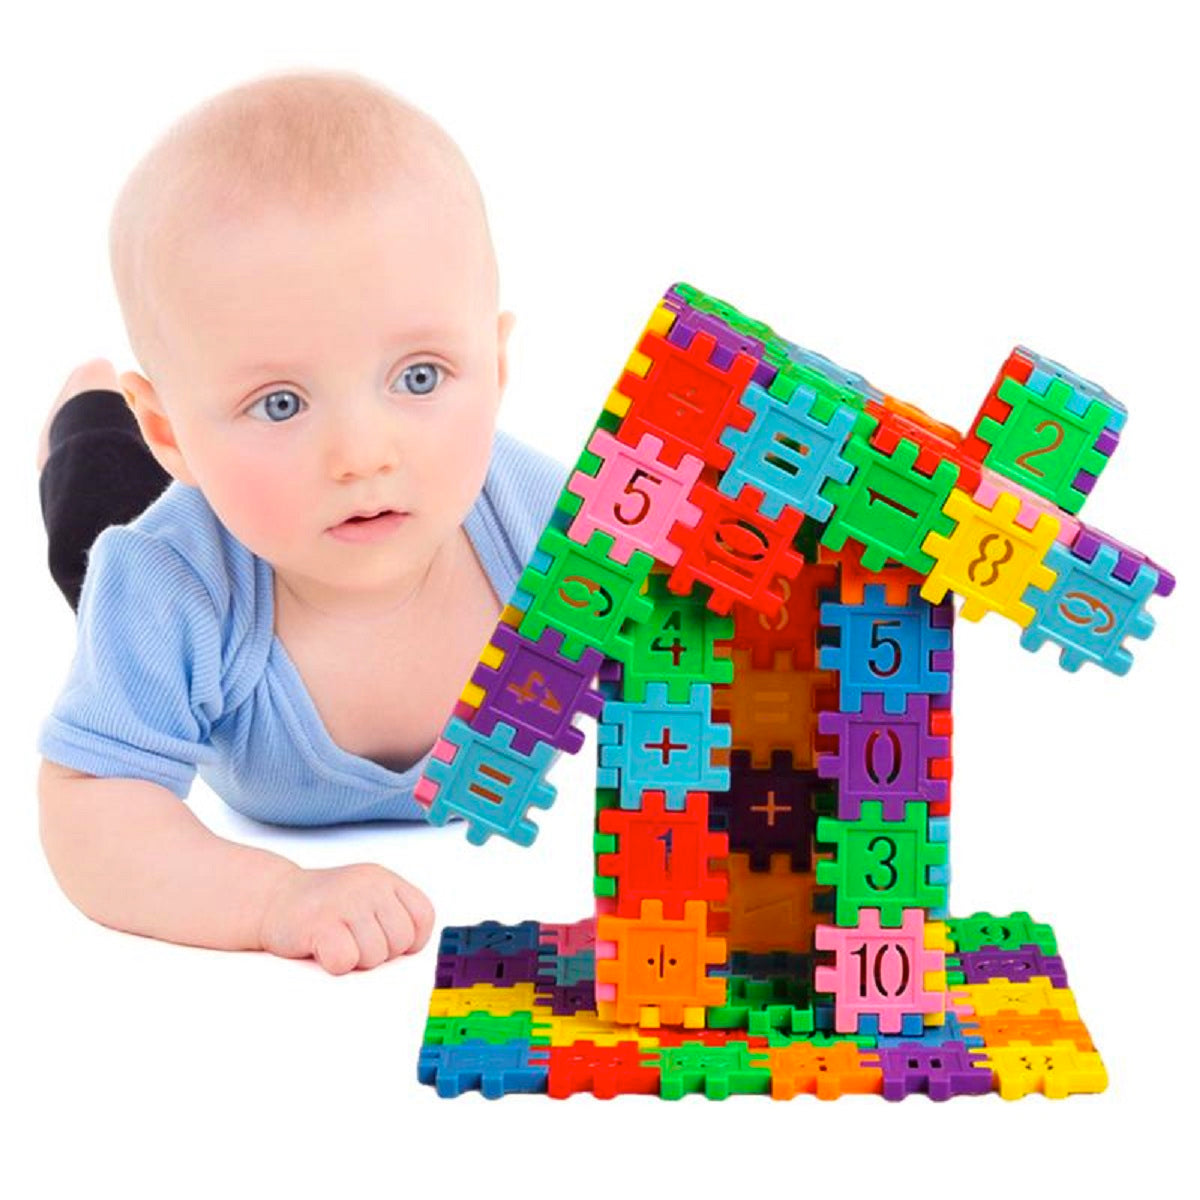 80-Piece Mini Educational Kids Toy Blocks Set